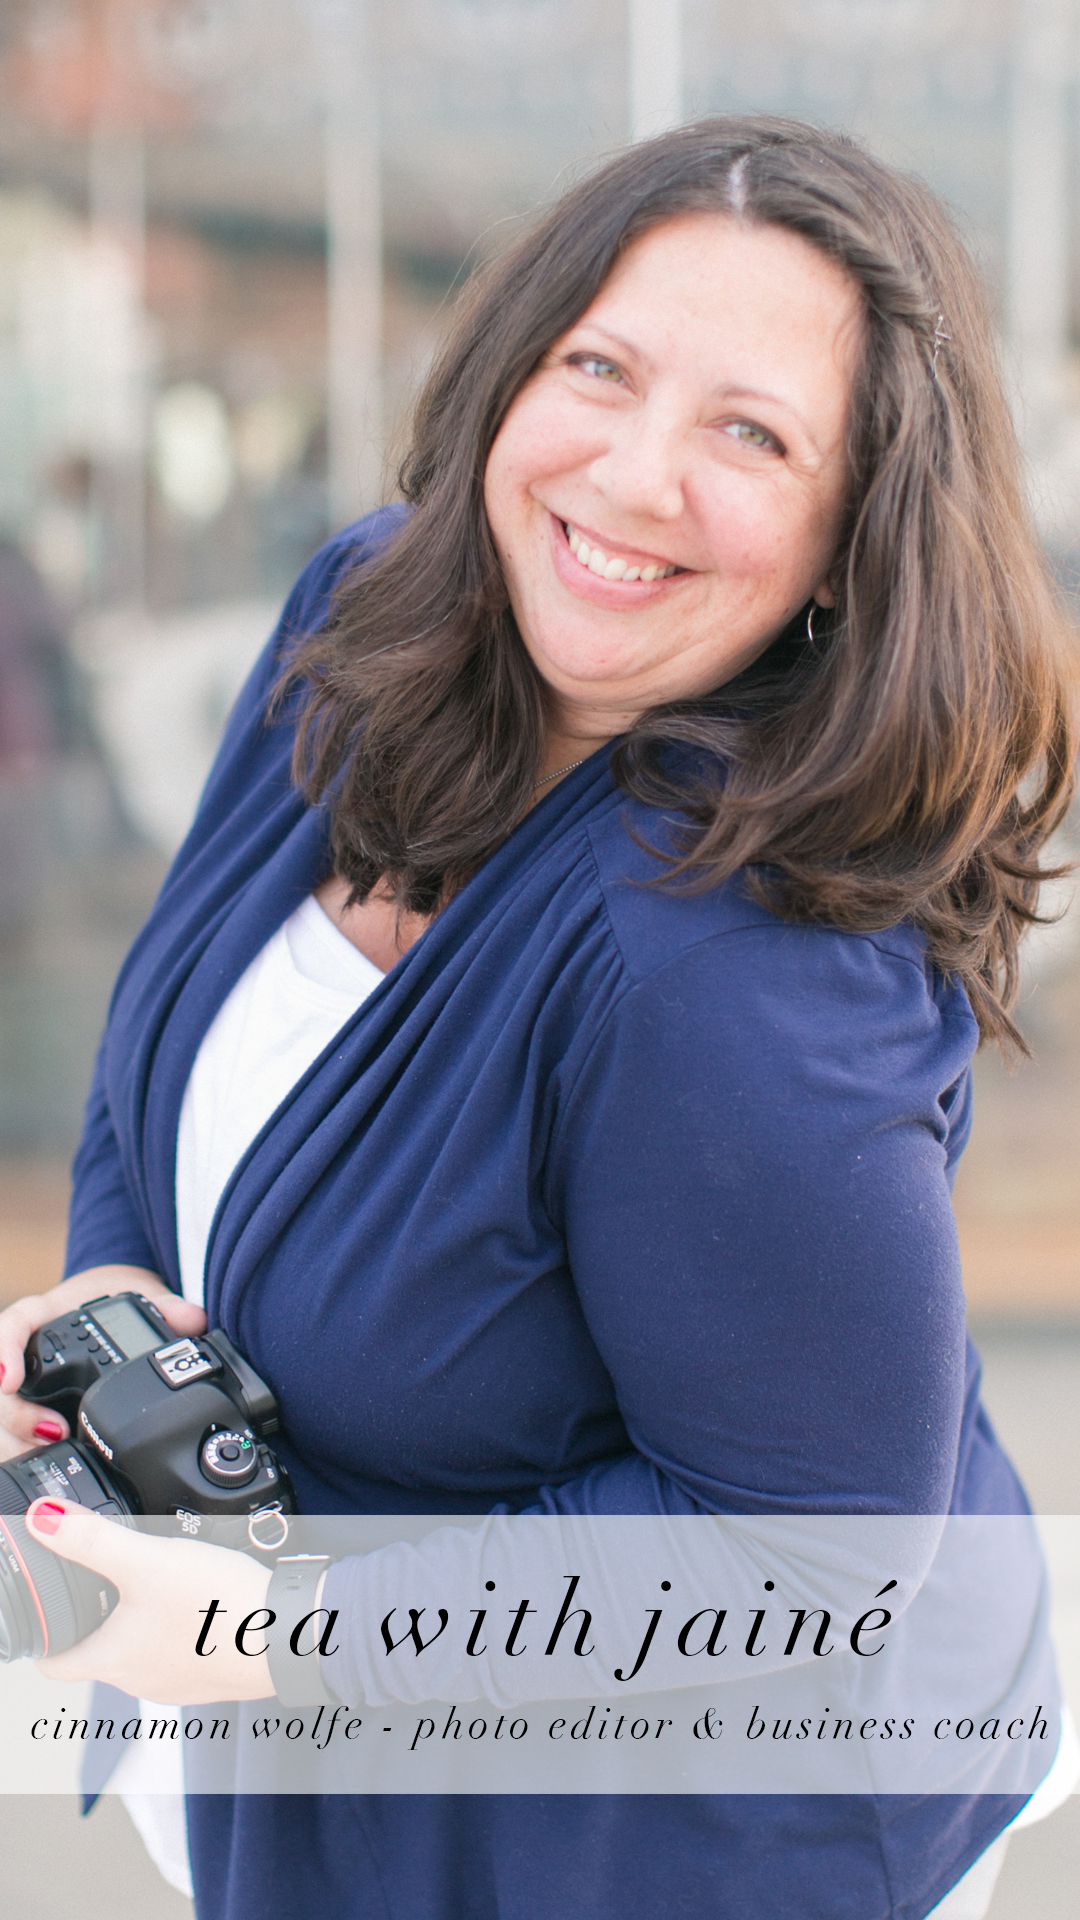 Cinnamon Wolfe Photo Editor and Business Coach